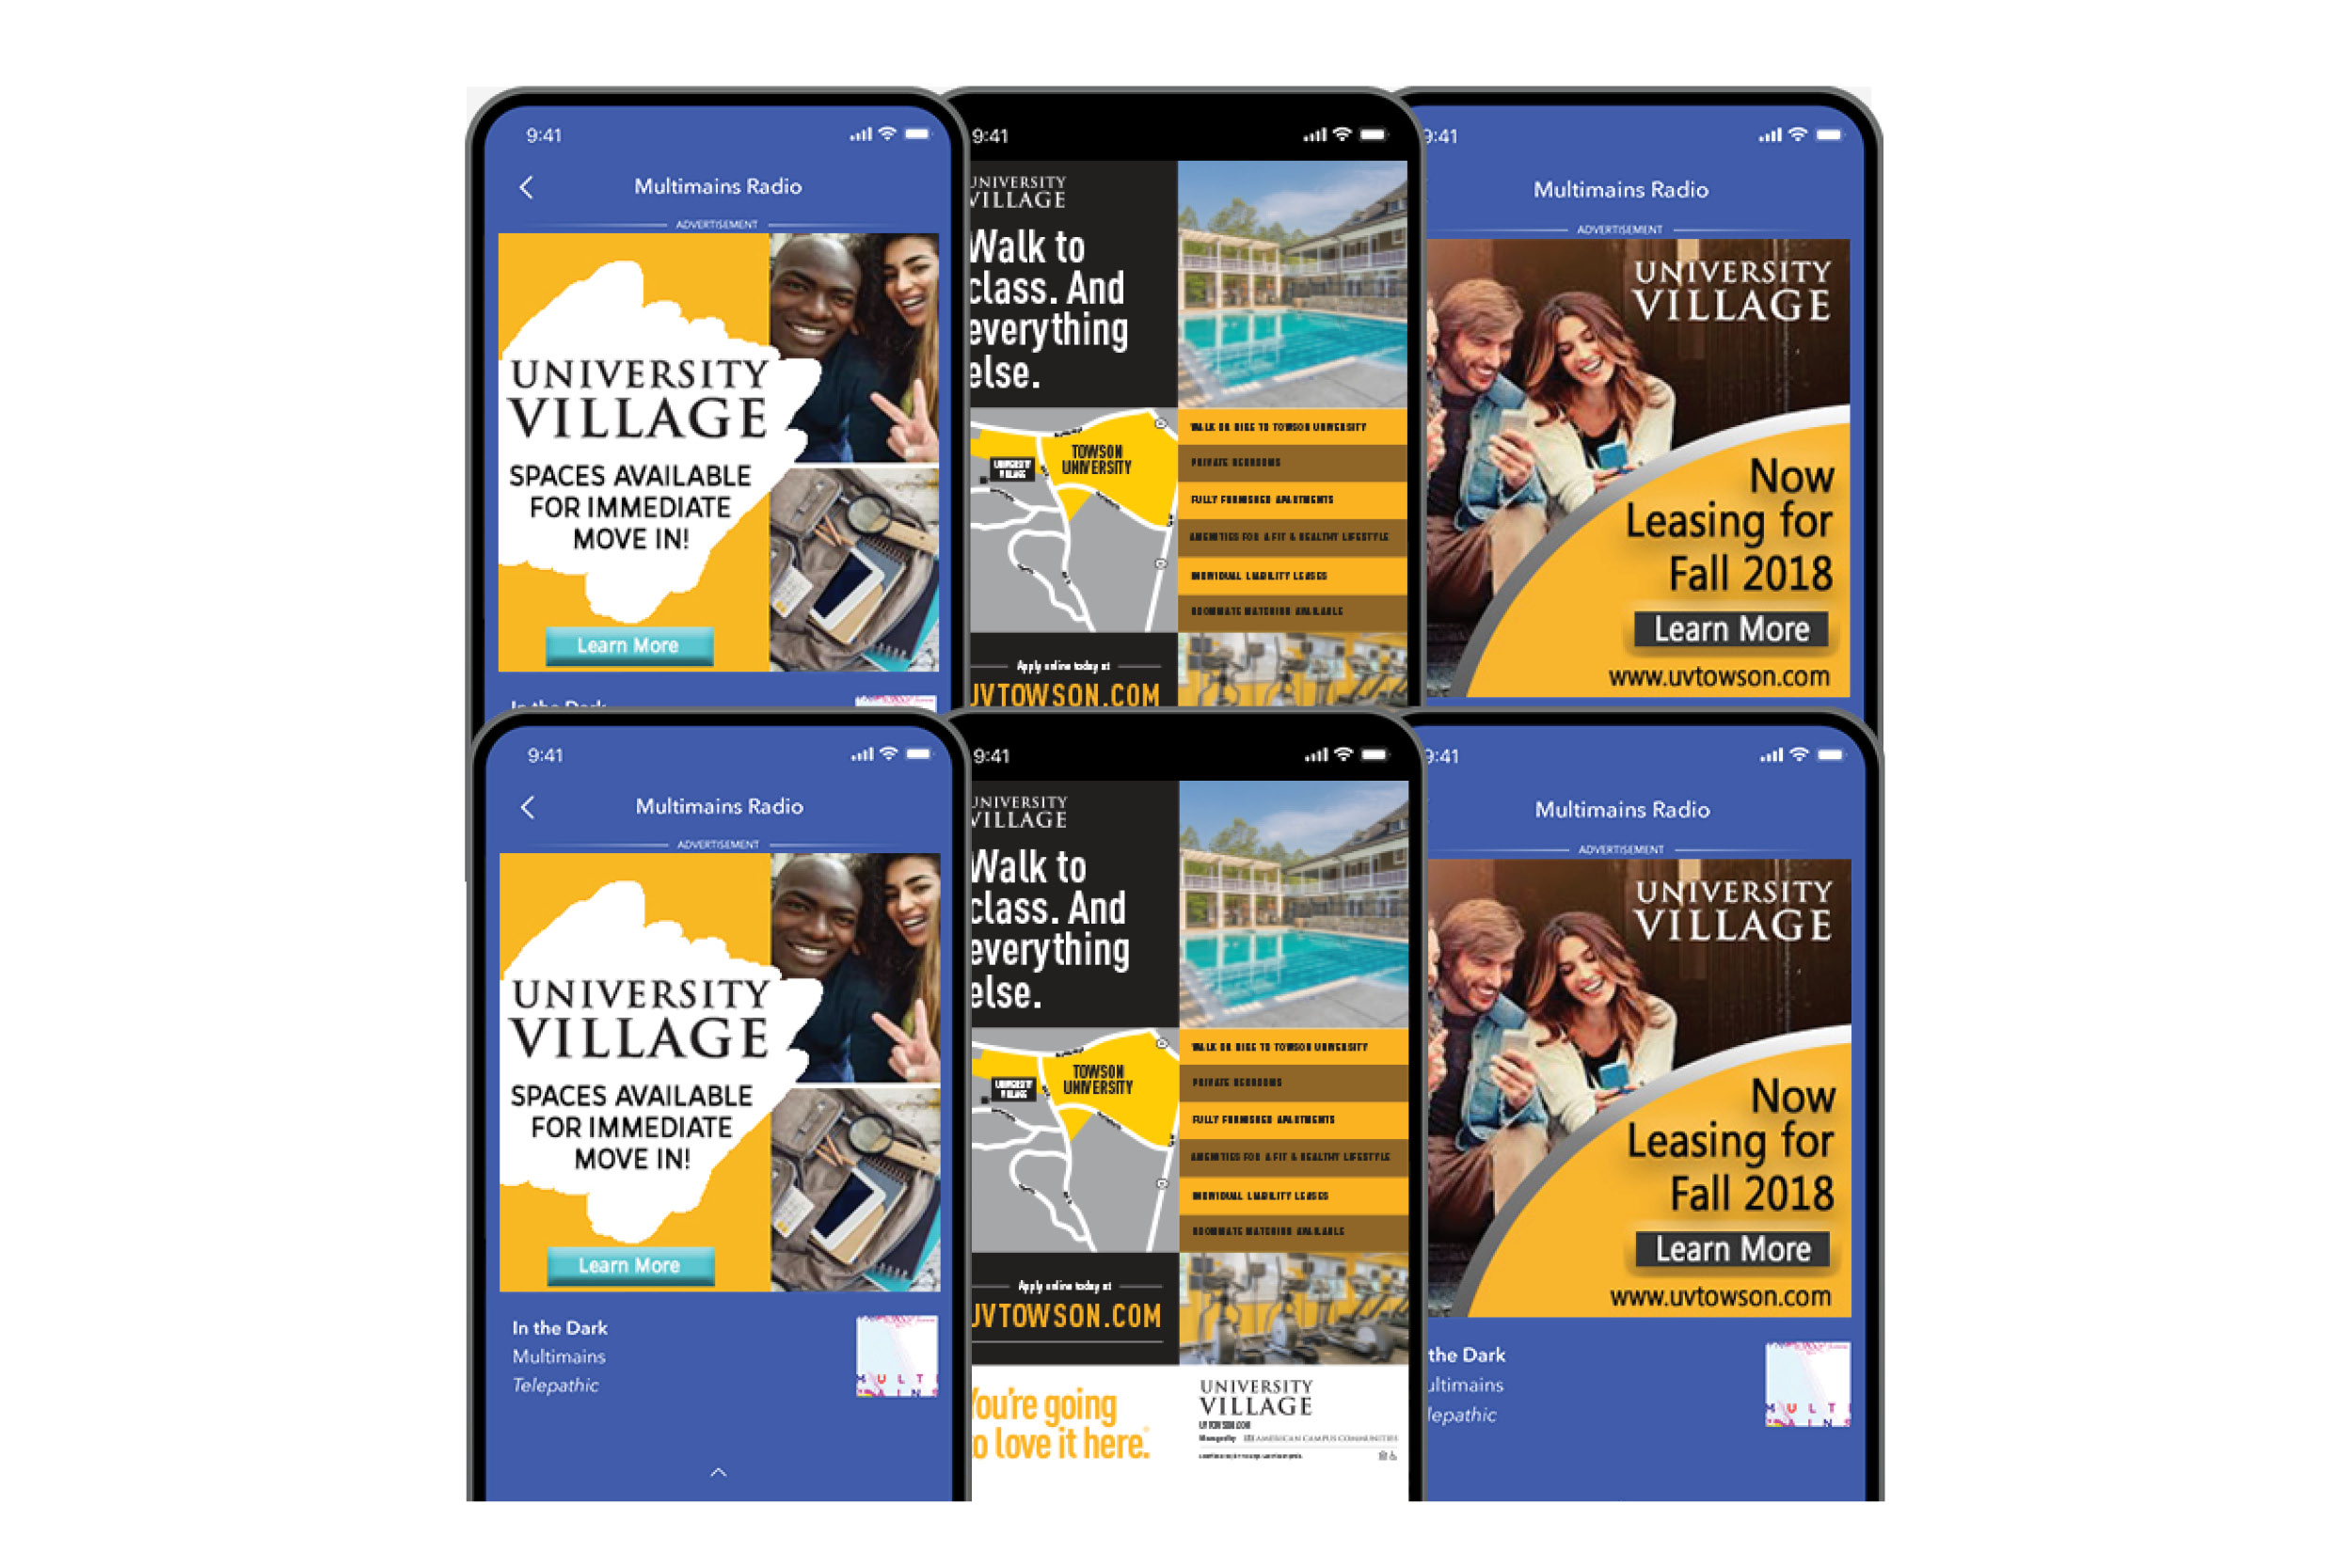 Mobile ad for University Village at Towson on several phones